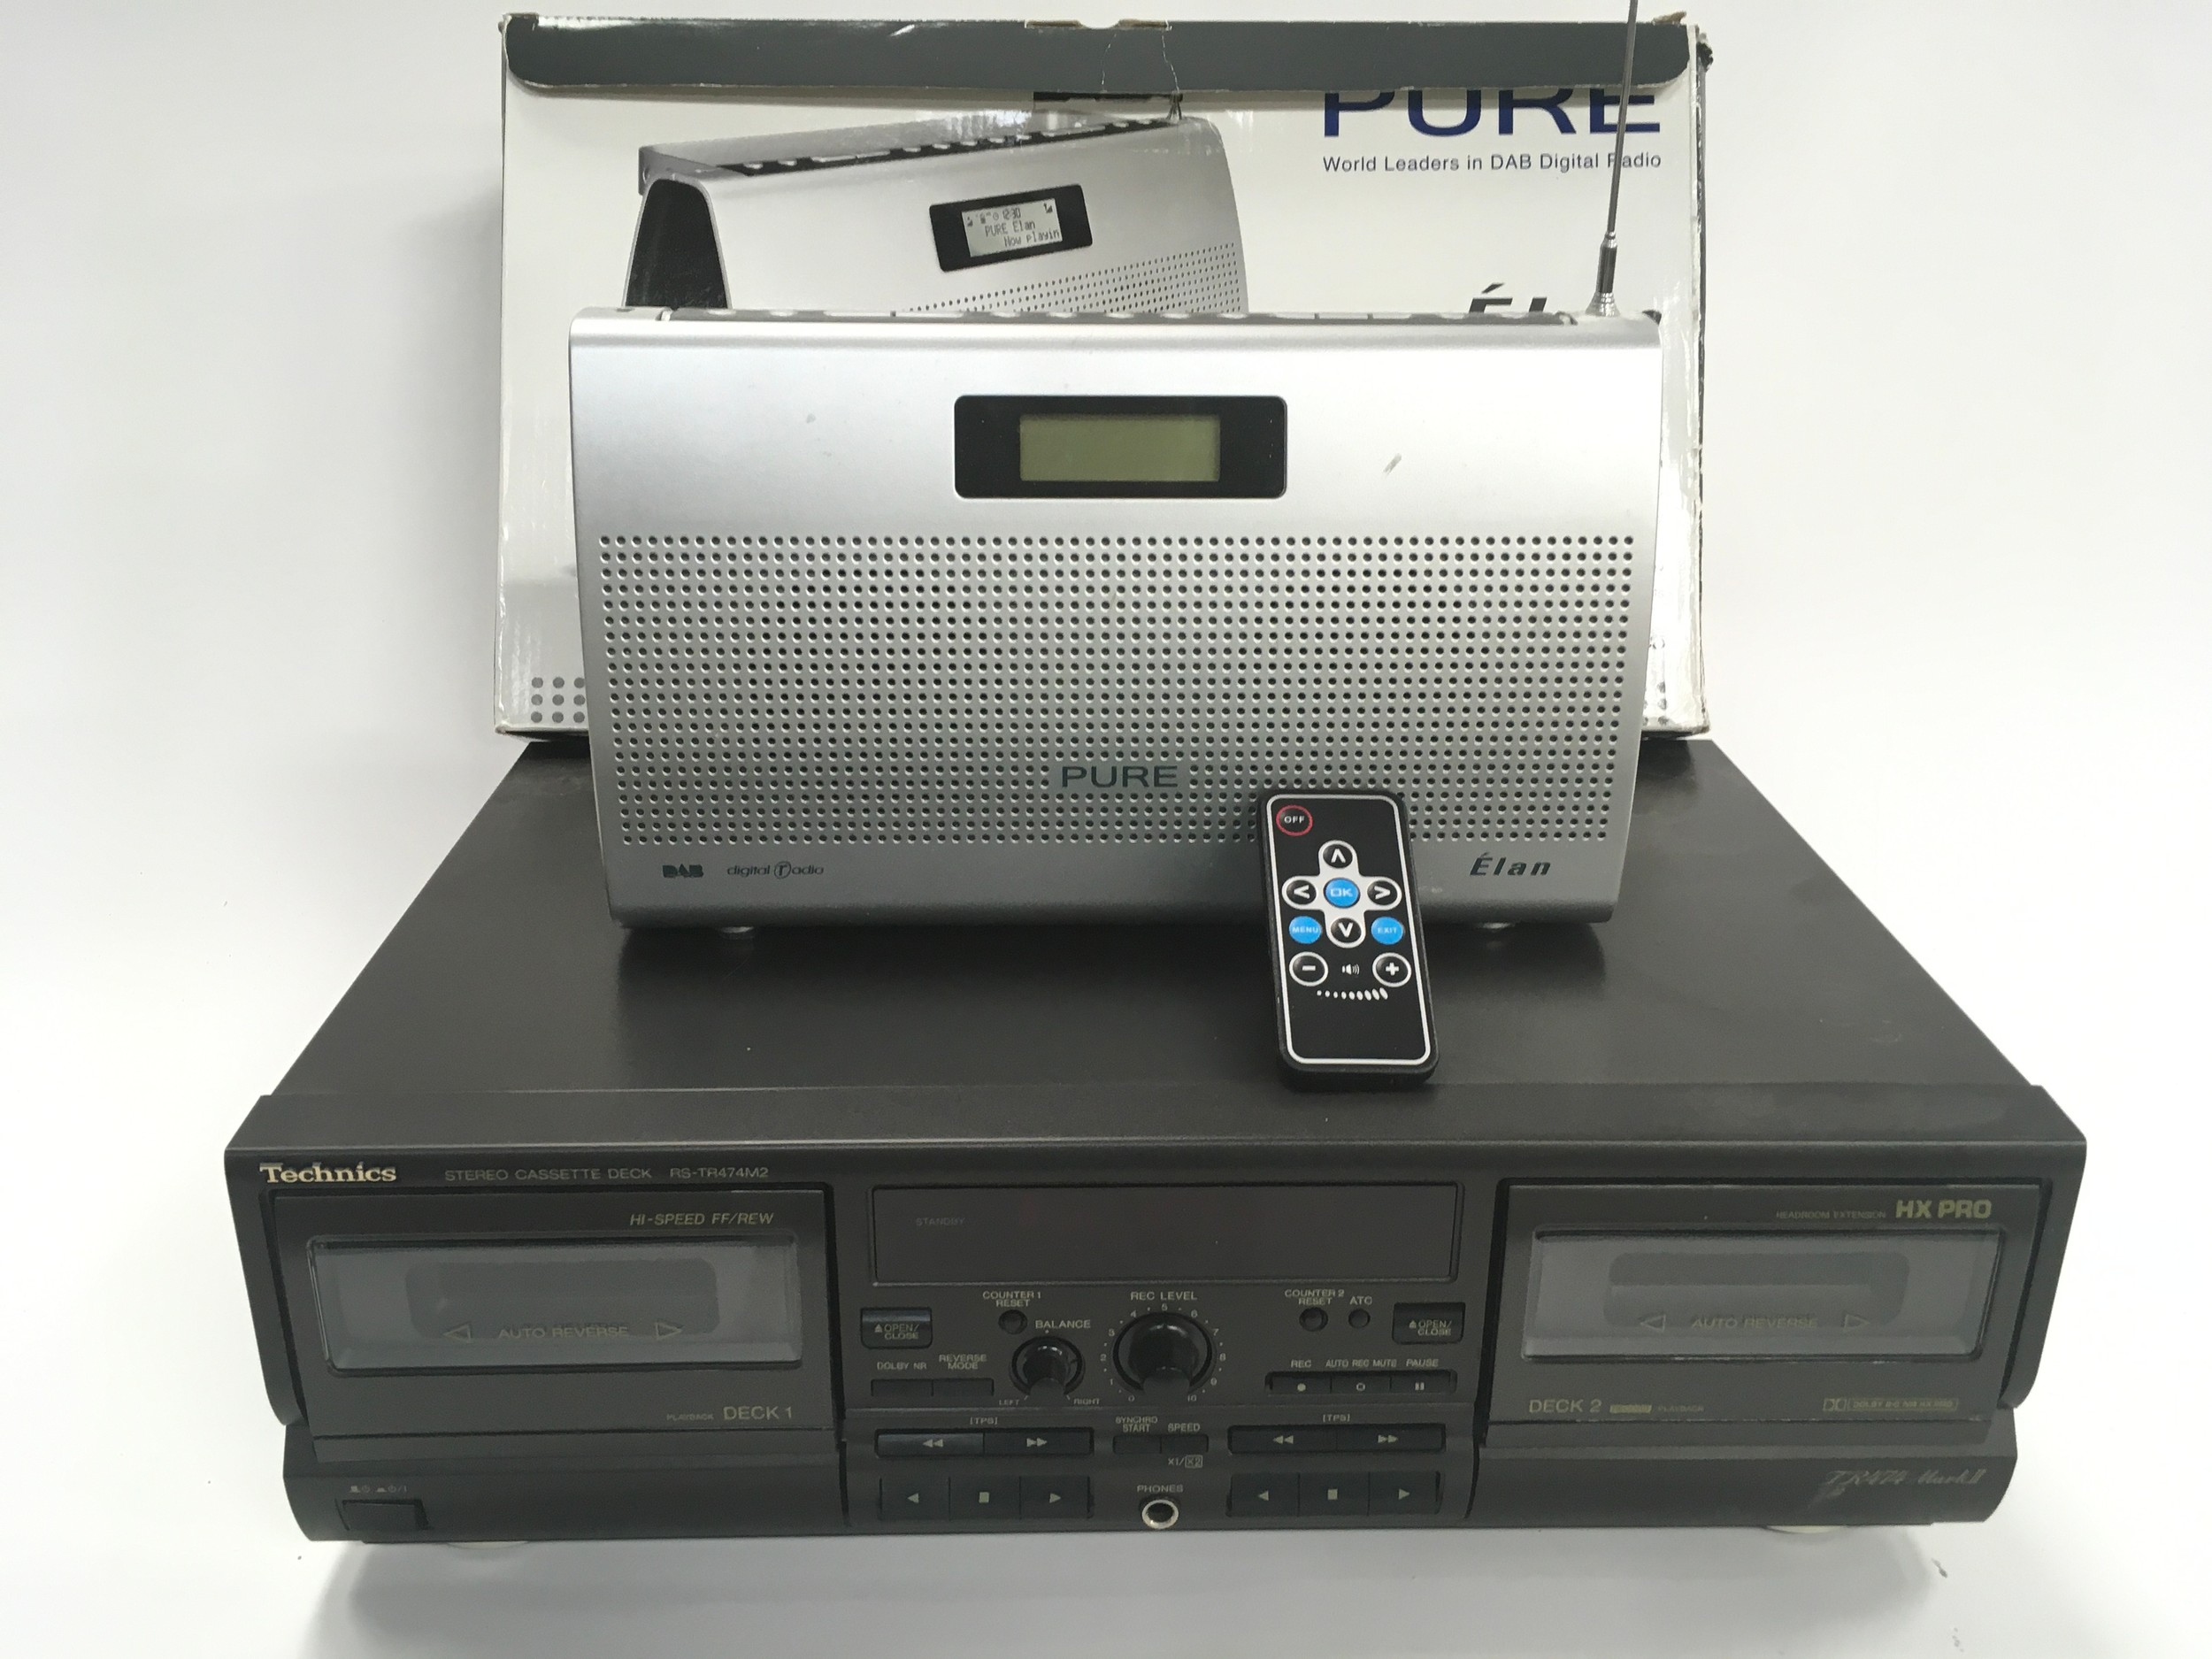 Technics cassette deck RS-TR474M2 with a Pure DAB portable radio with box.